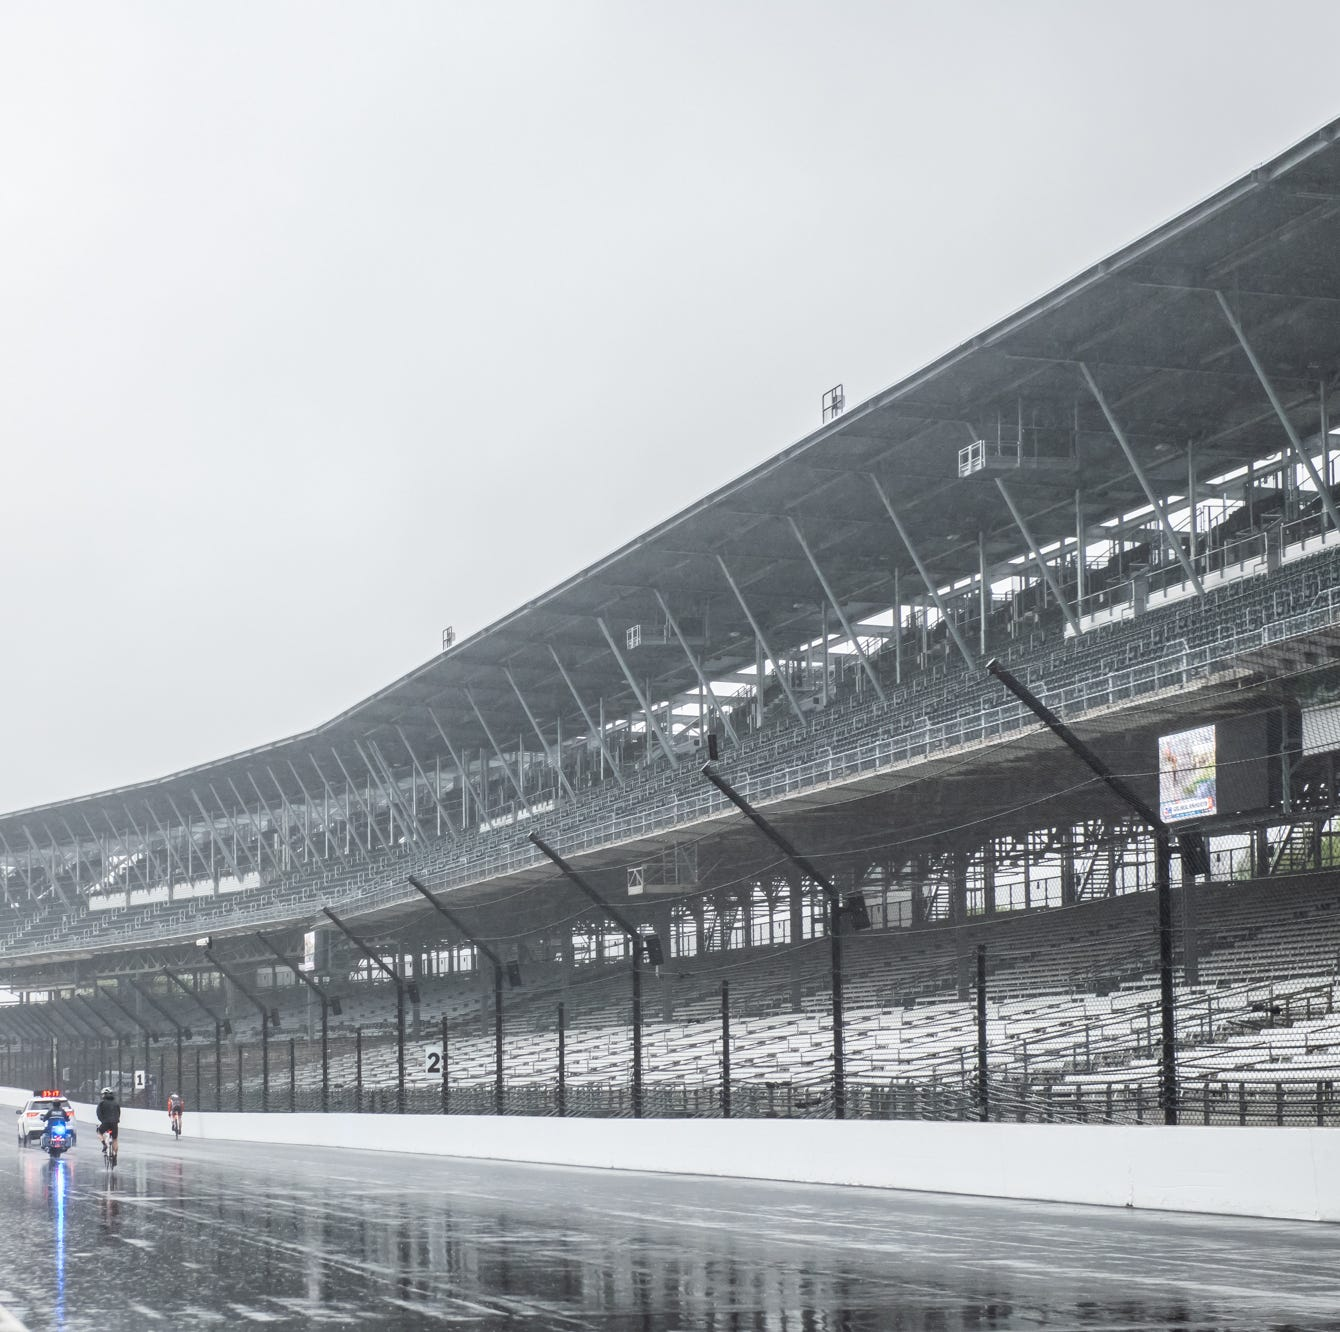 Latest Indy 500 weather forecast calls for chance of rain, storms